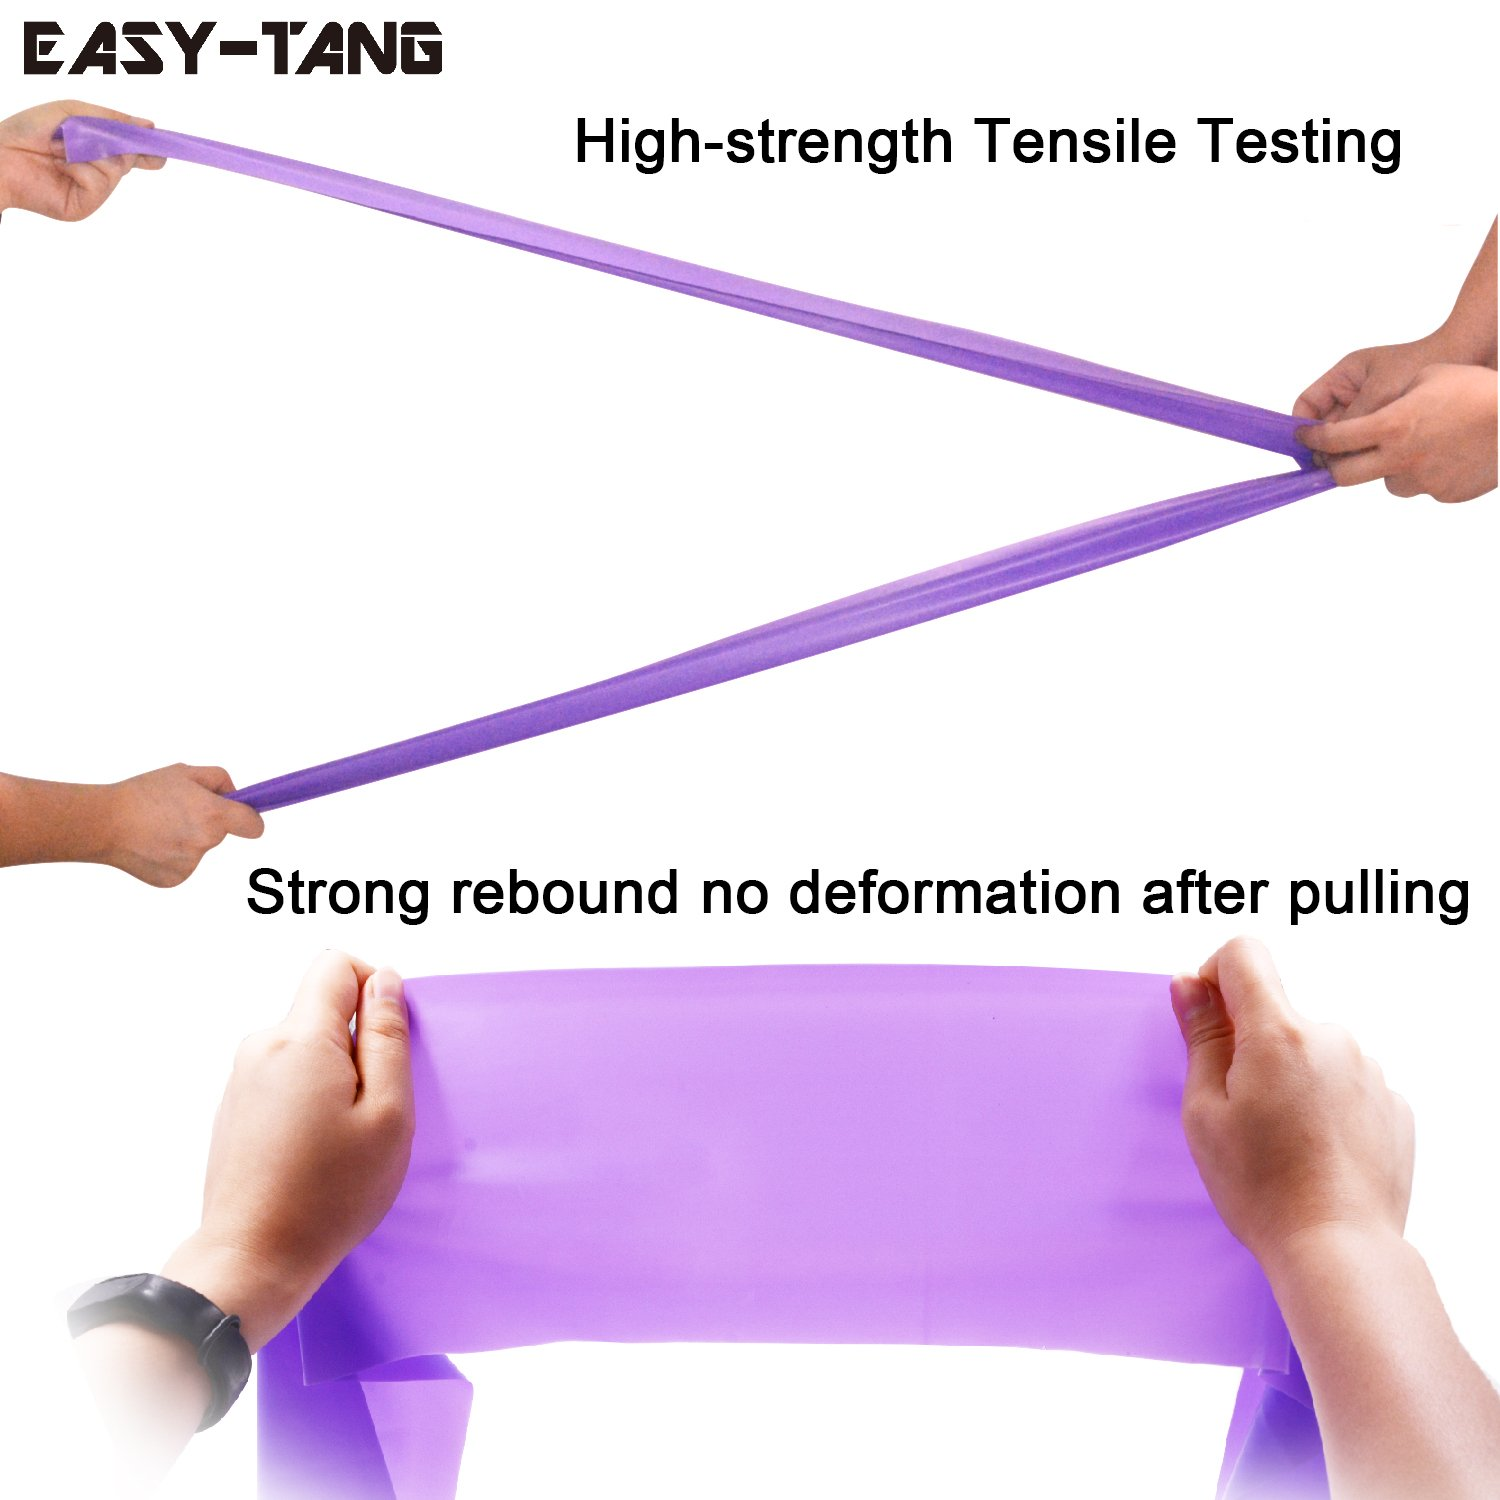 Yoga Stretch Bands Home Gym Fitness Equipment for Physical Therapy Strength Training Workout Long Exercise Resistance Band Stretch Pilates Yoga 2 Packs Set